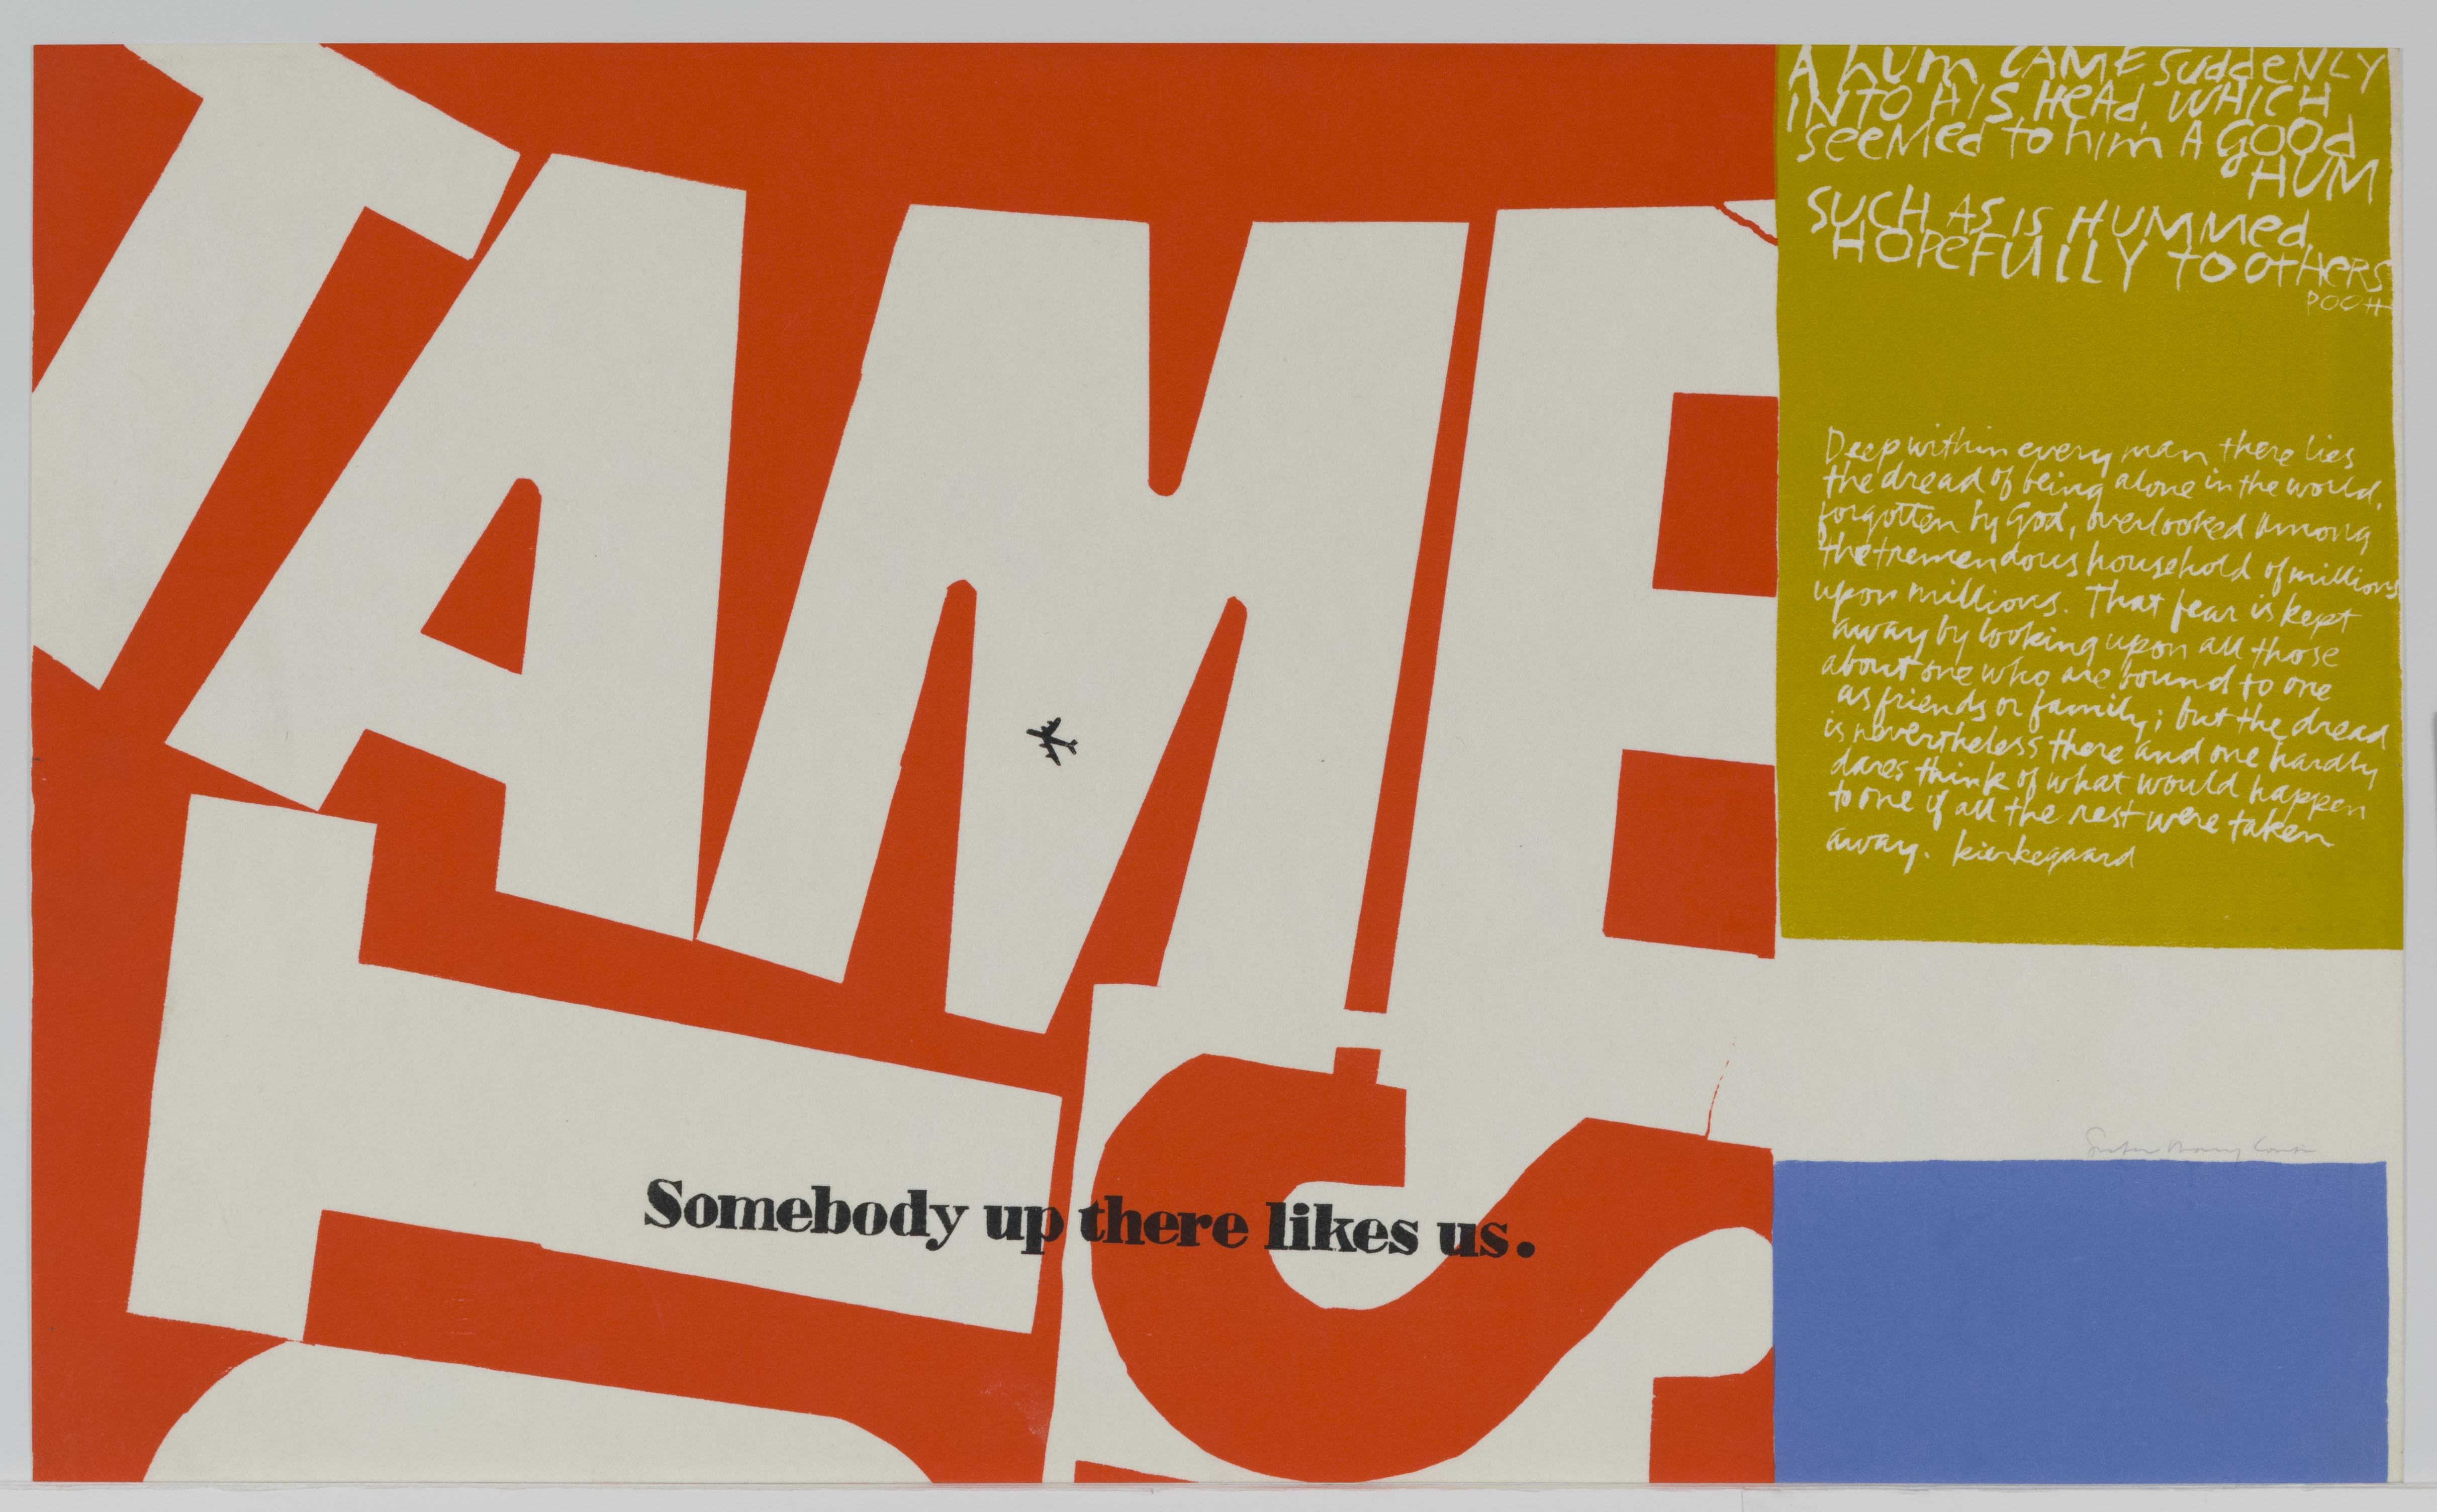 Corita Kent, (tame) hummed hopefully to others, 1966